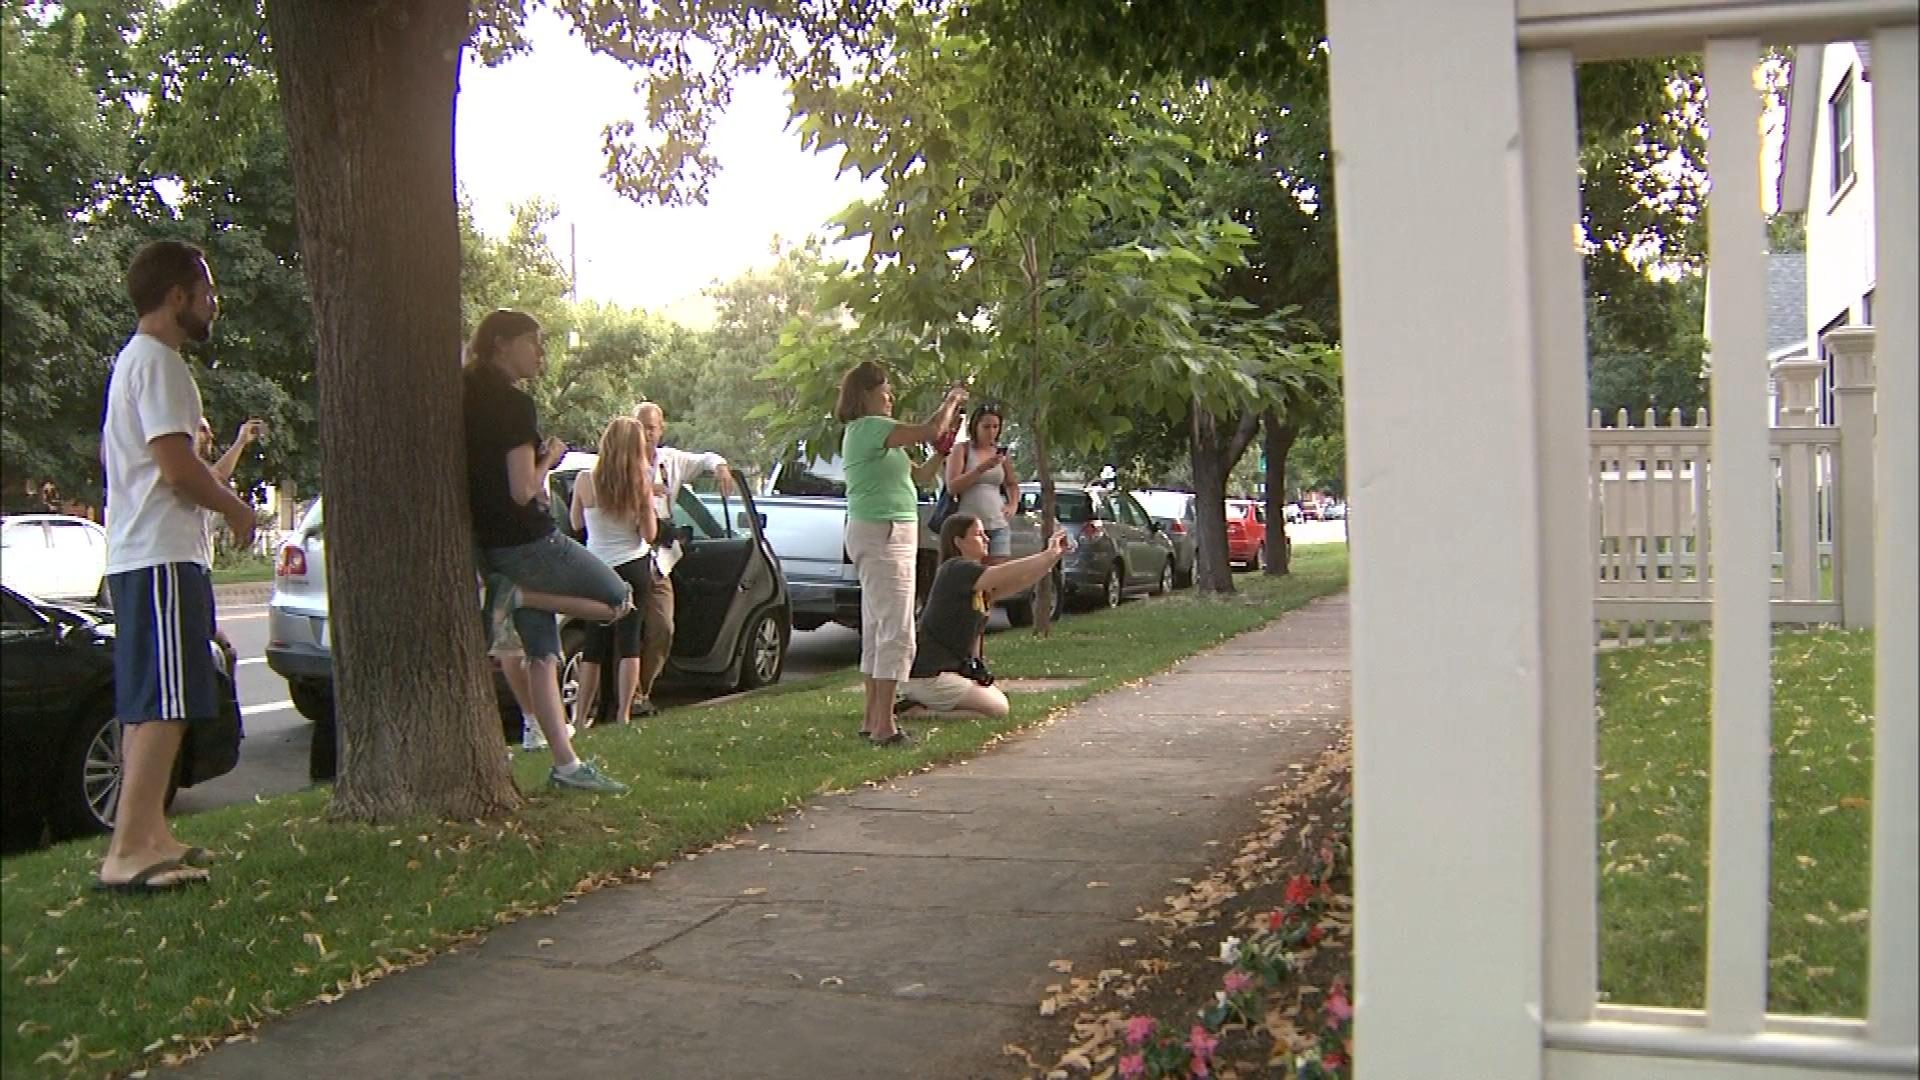 Robin Williams fans at the Mork & Mindy House in Boulder (credit: CBS)